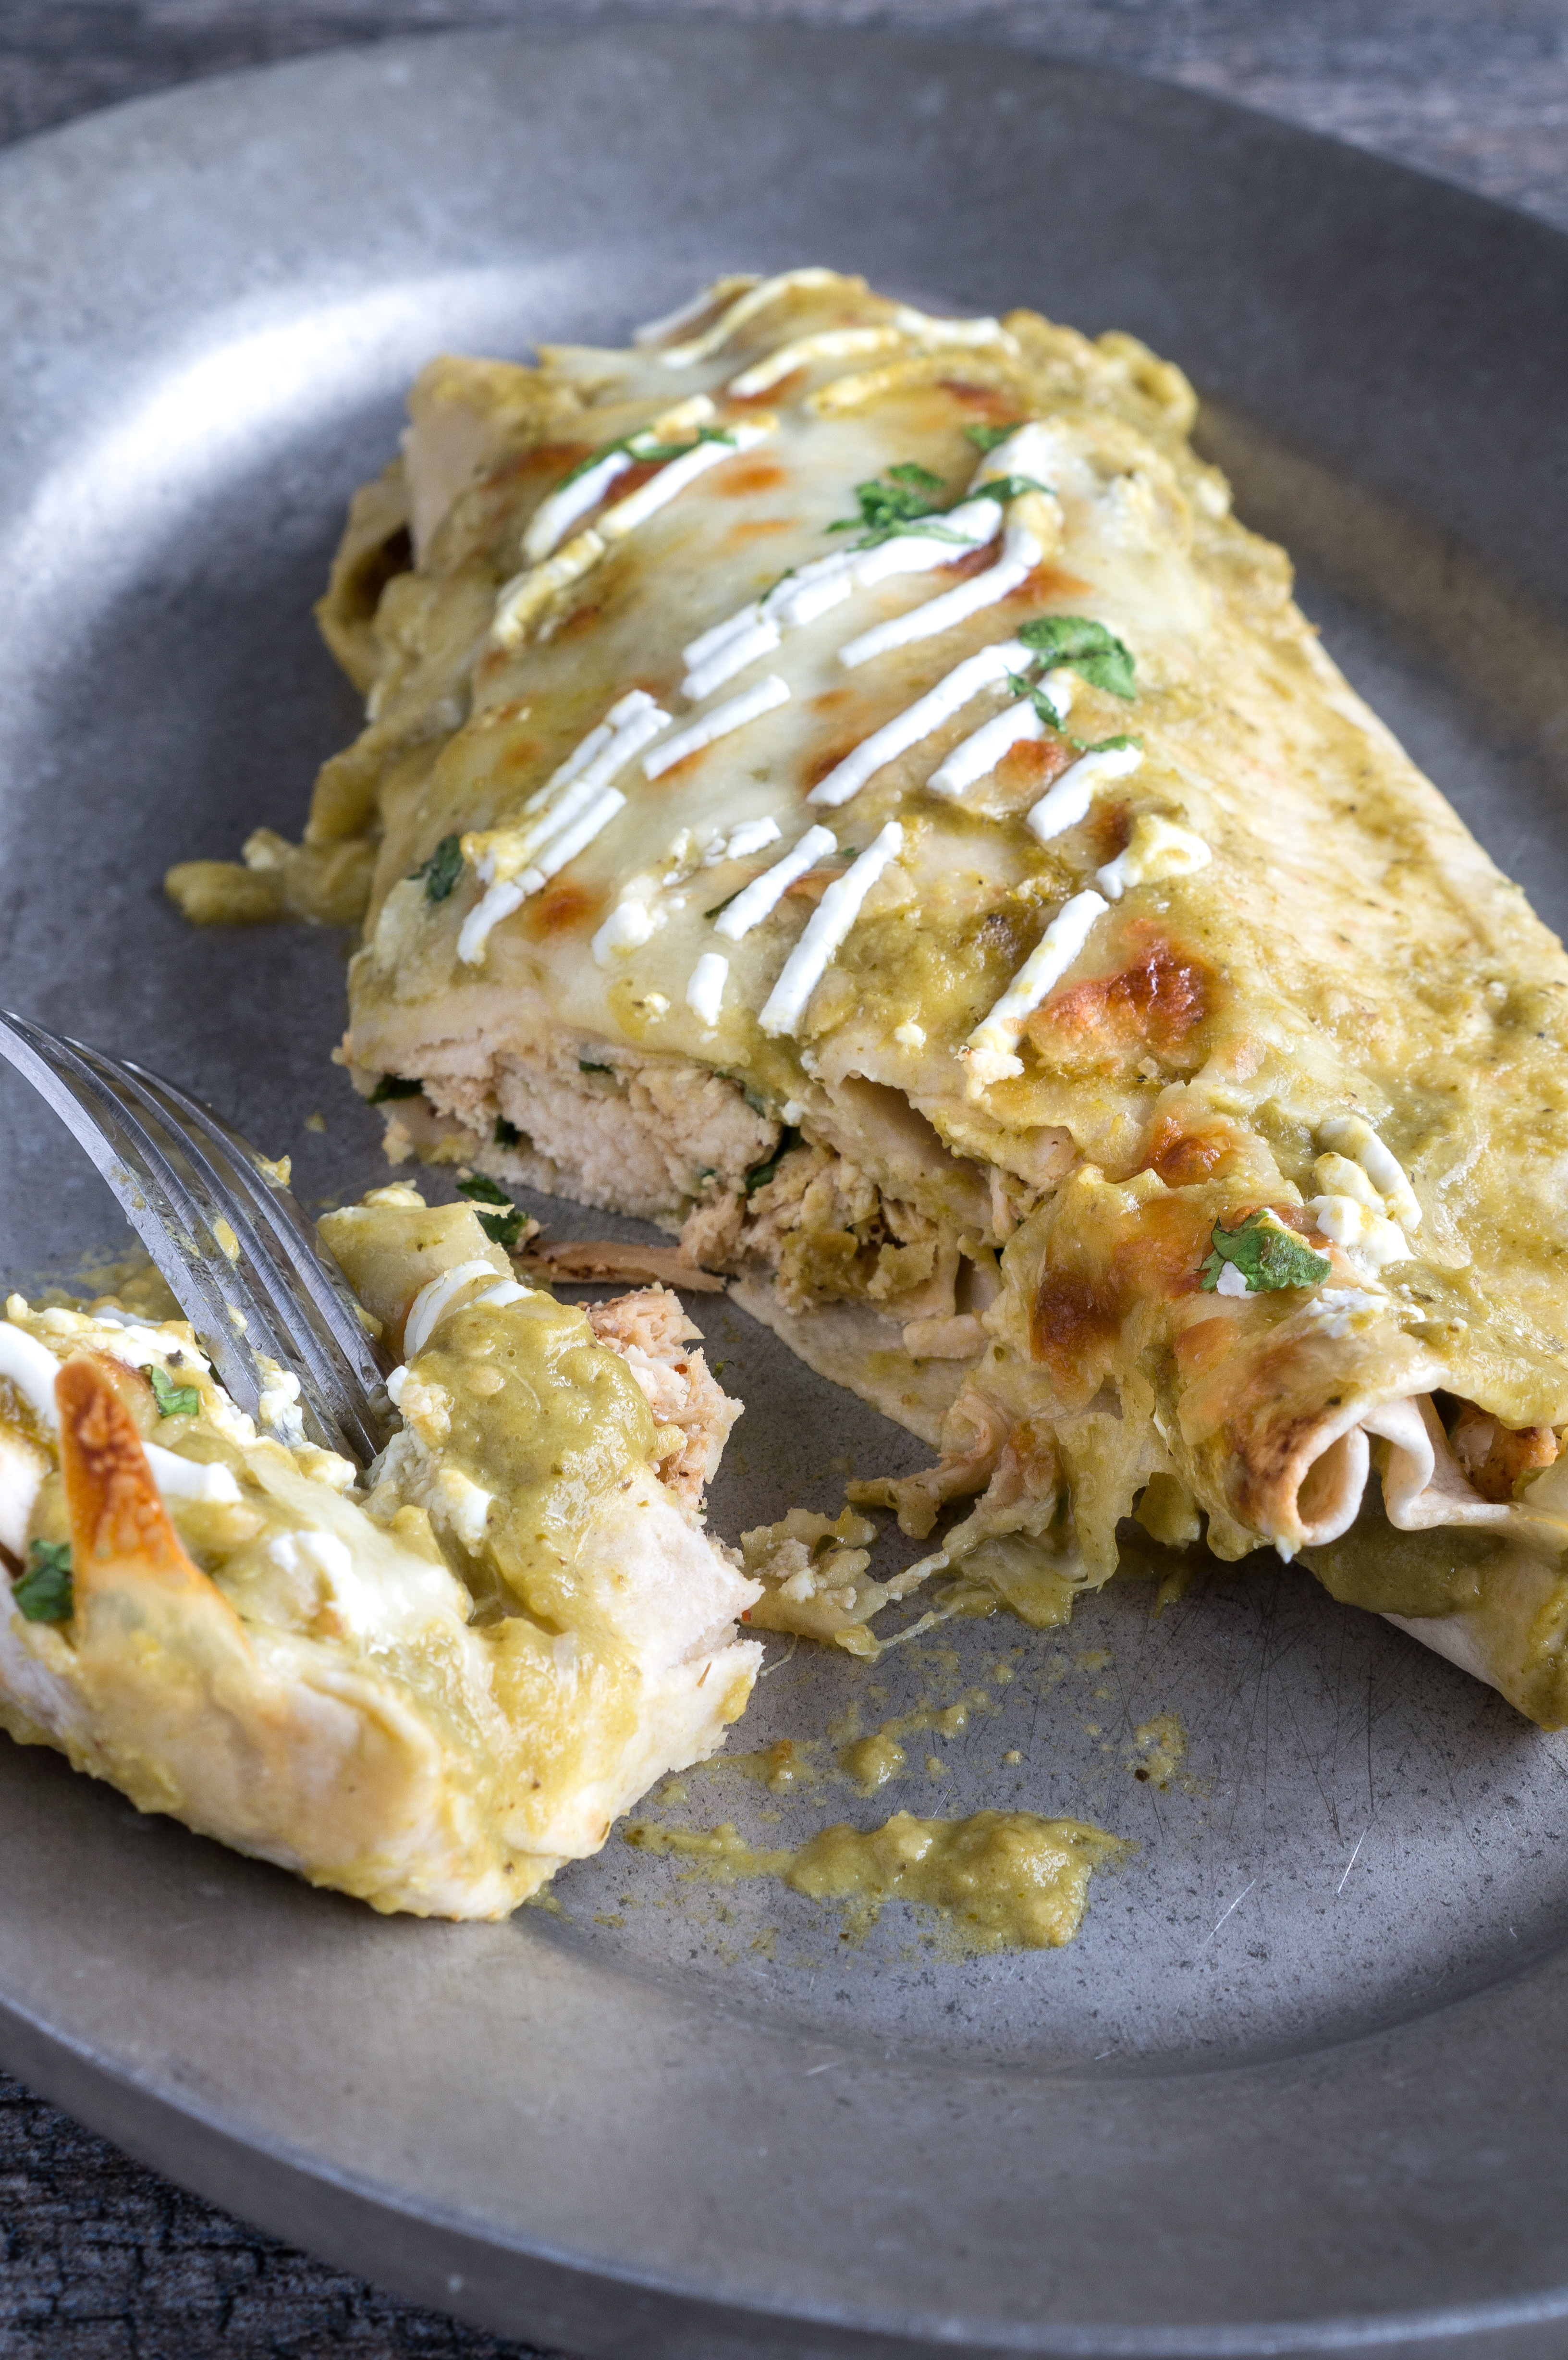 Chicken Spinach Enchiladas – Healthy recipe for Chicken Spinach Enchiladas, ready in under 30 min! Using lean chicken breasts, chopped spinach, low fat cheese, soft tortillas, and a homemade creamy tomatillo green sauce. We love topping these cheesy enchiladas with fresh cilantro, a drizzle of greek yogurt, and sliced avocado. This bake-ahead dish is great for quick weeknight dinners! ♥ | freeyourfork.com